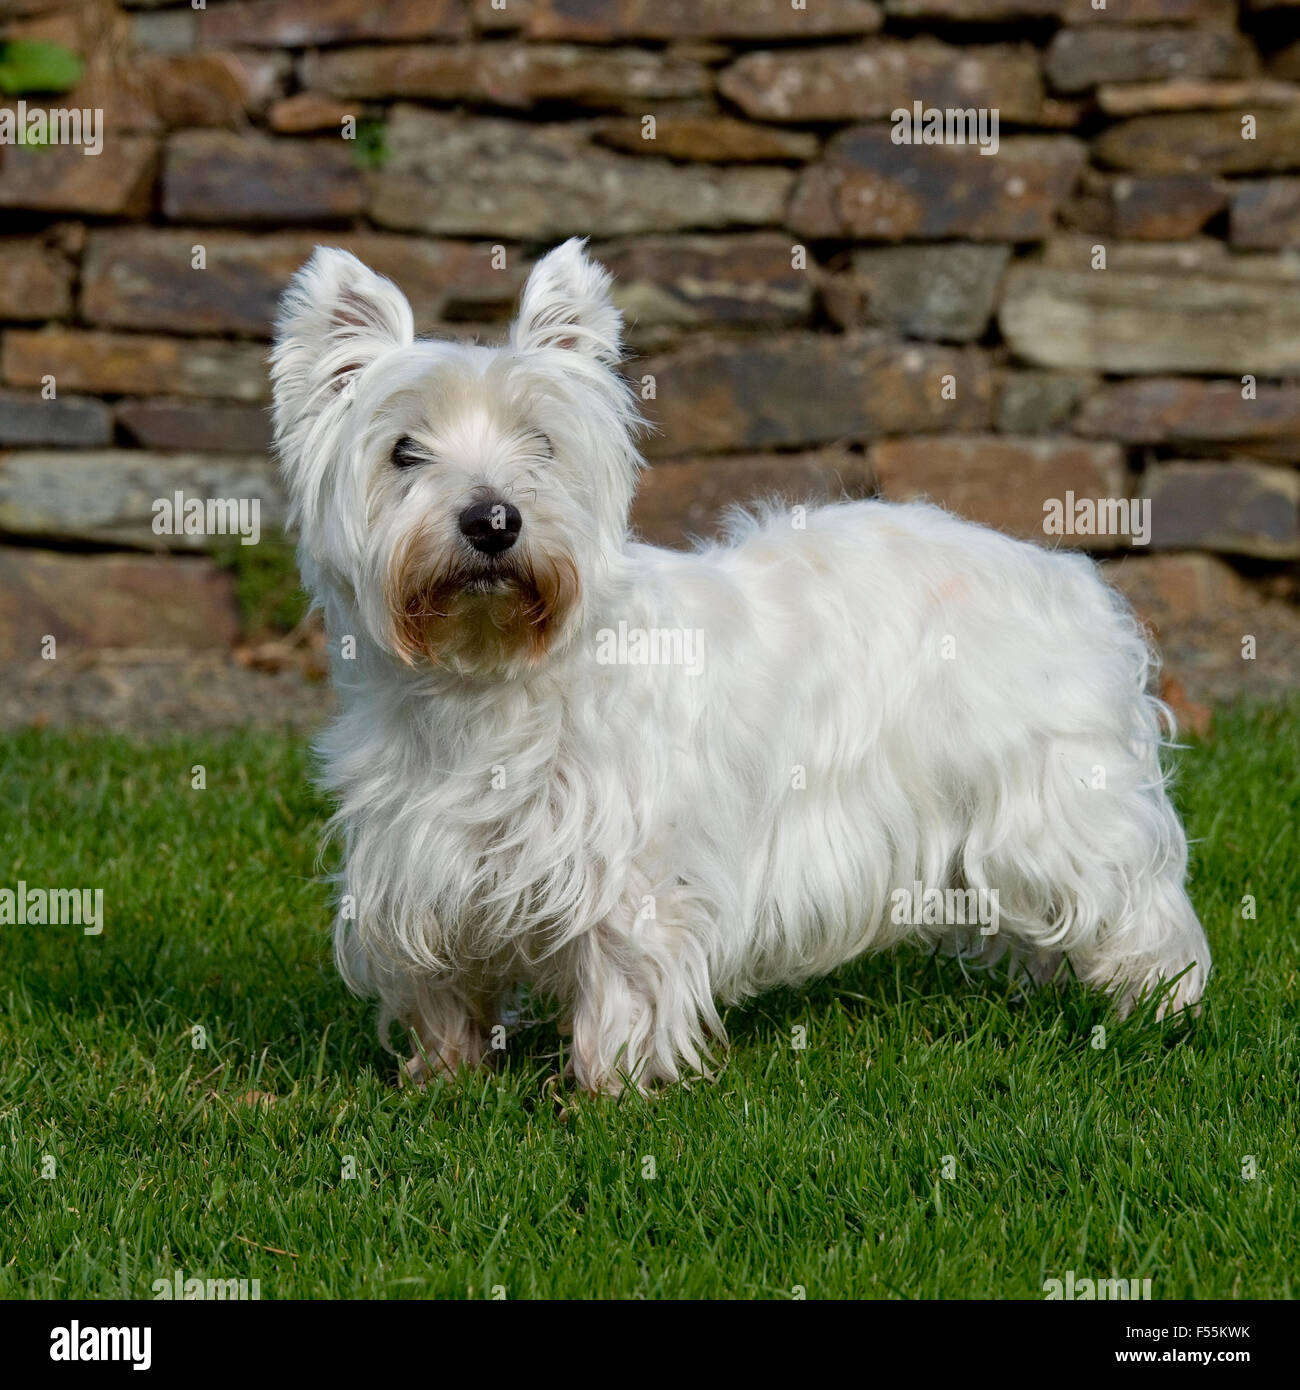 West Highland White Terrier Westie Dog Stock Photos & West